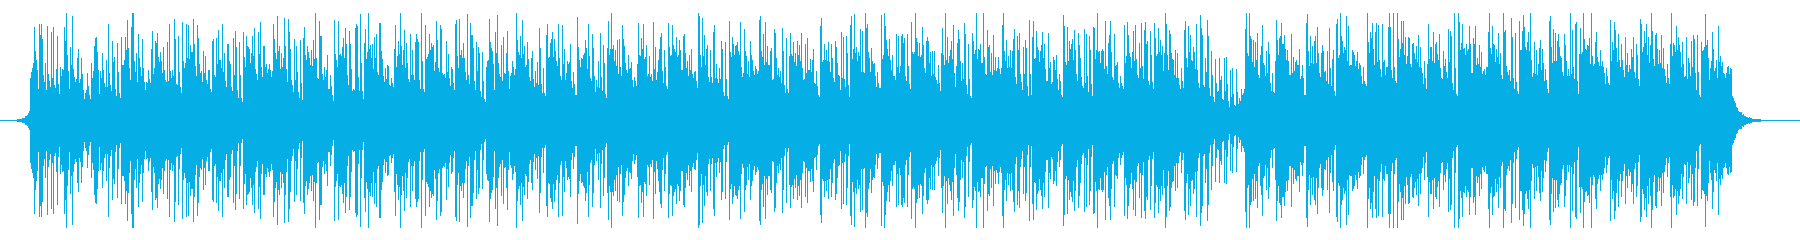 Medical Music's reproduced waveform